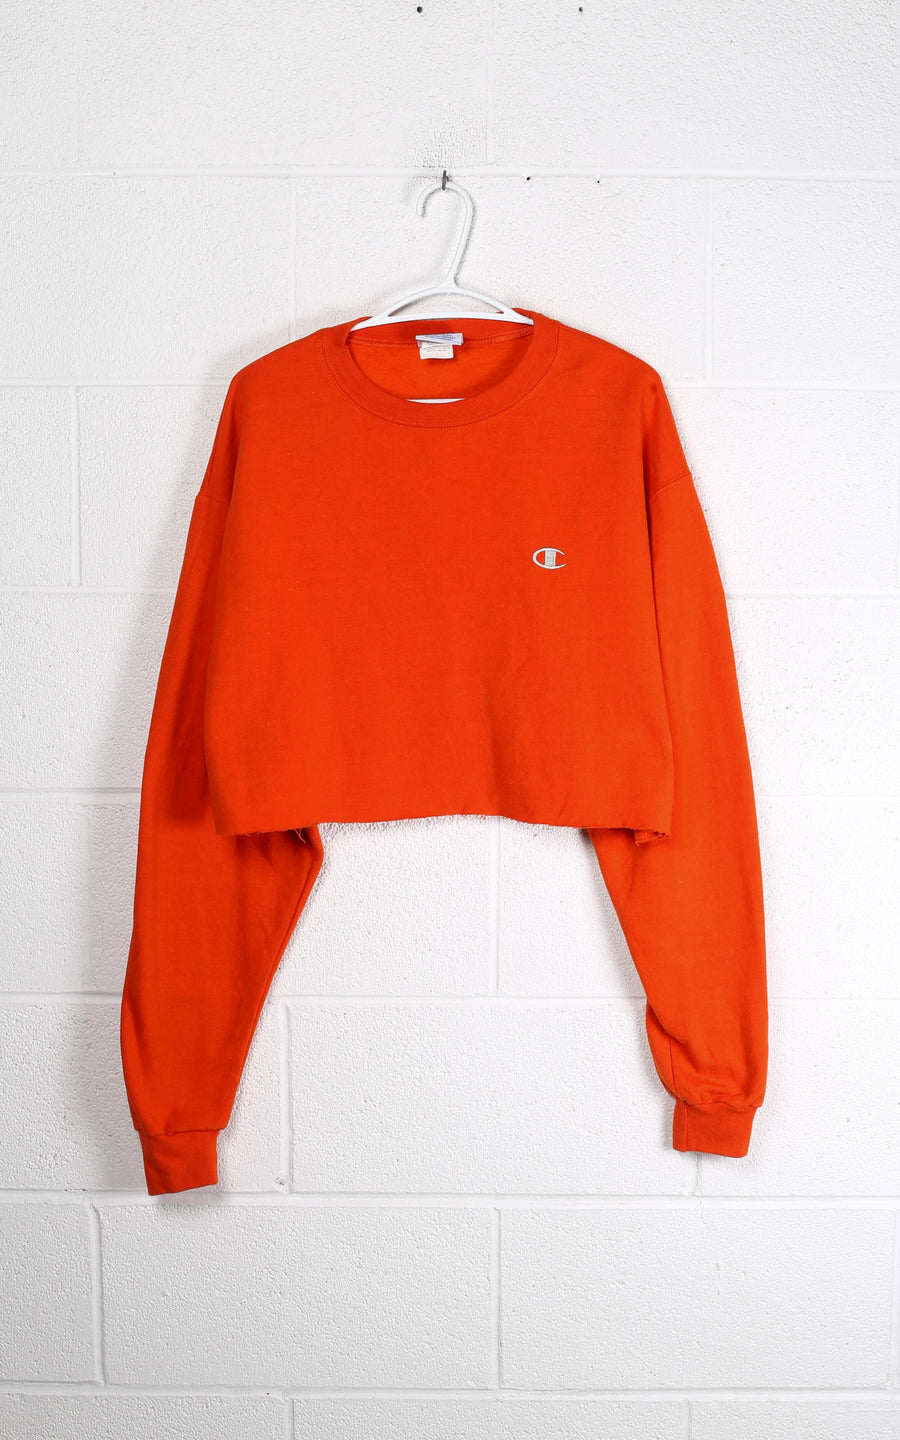 Vintage Rework Champion Crop Sweatshirt